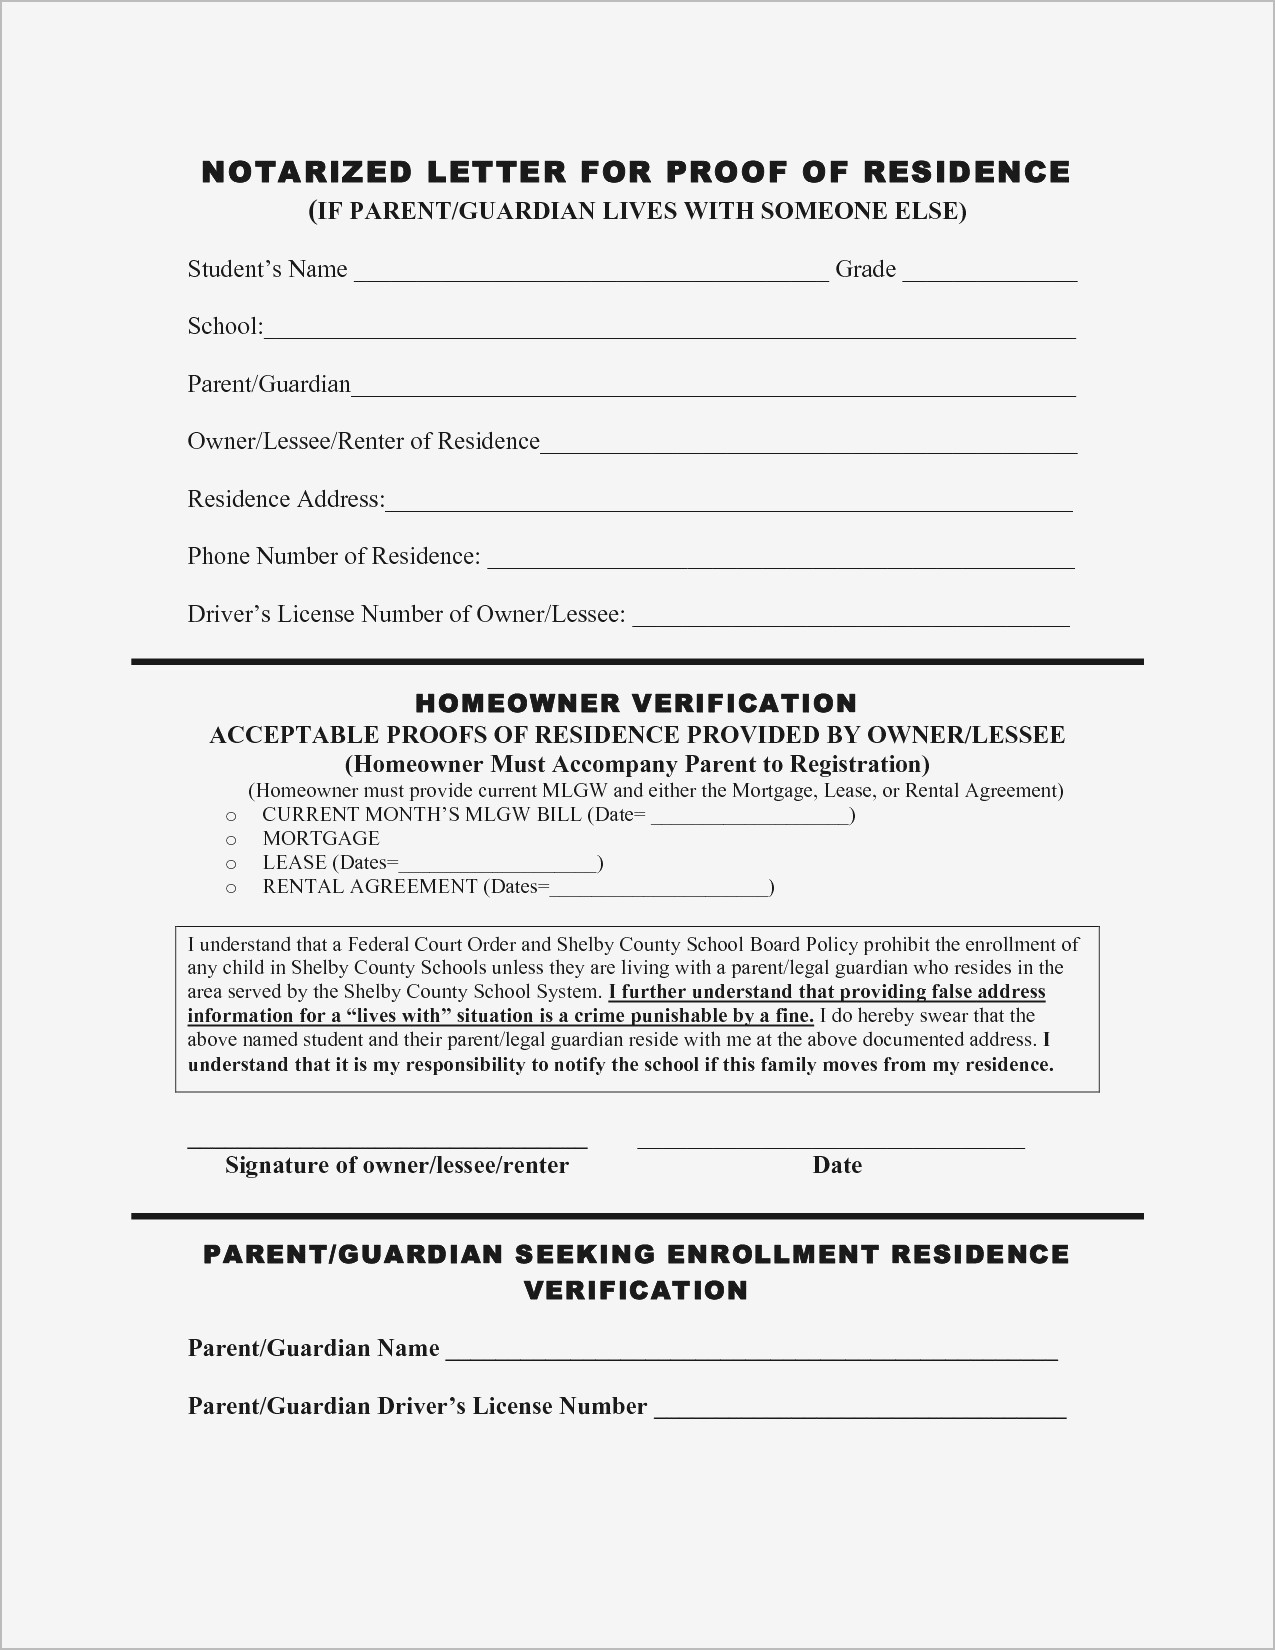 Proof Of Residency Letter Notarized Template - Proof Residency Letter Template Word Awesome Printable Notarized